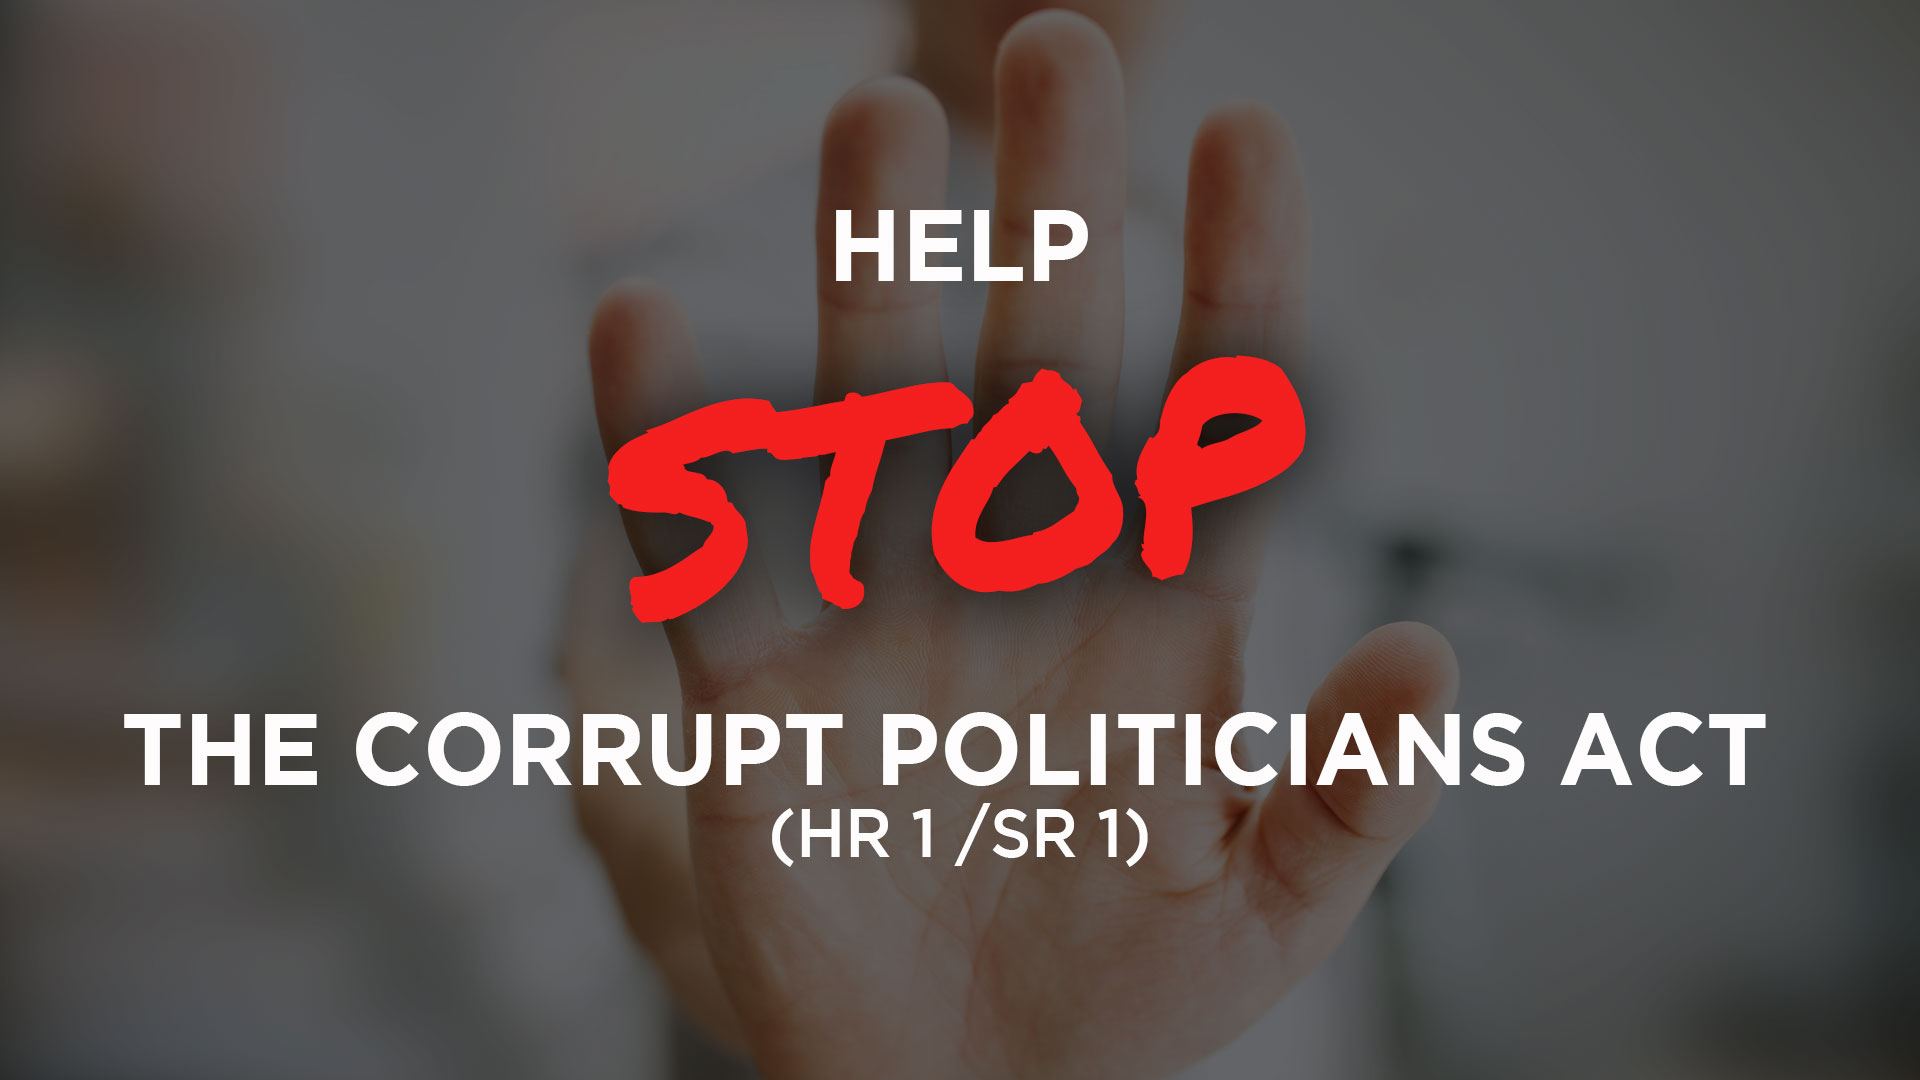 Help stop the corrupt politicians act